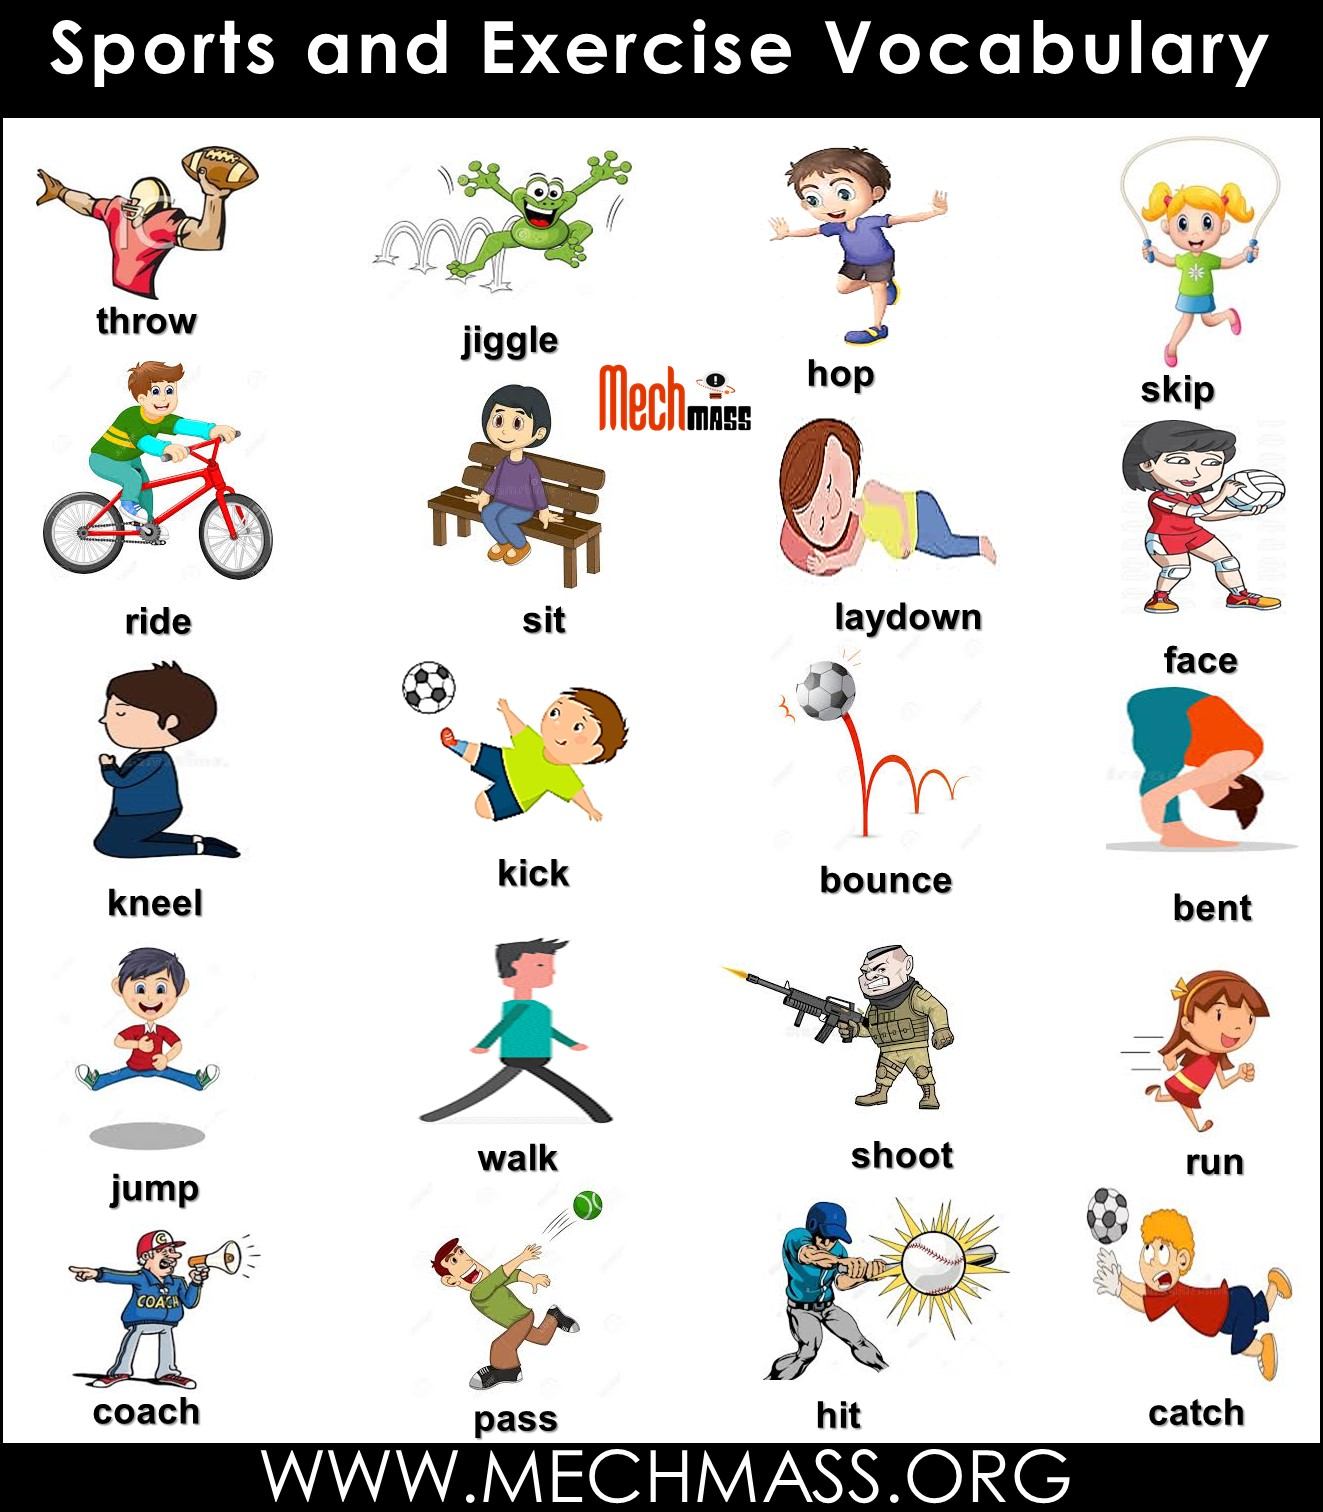 exercise vocabulary words with pictures